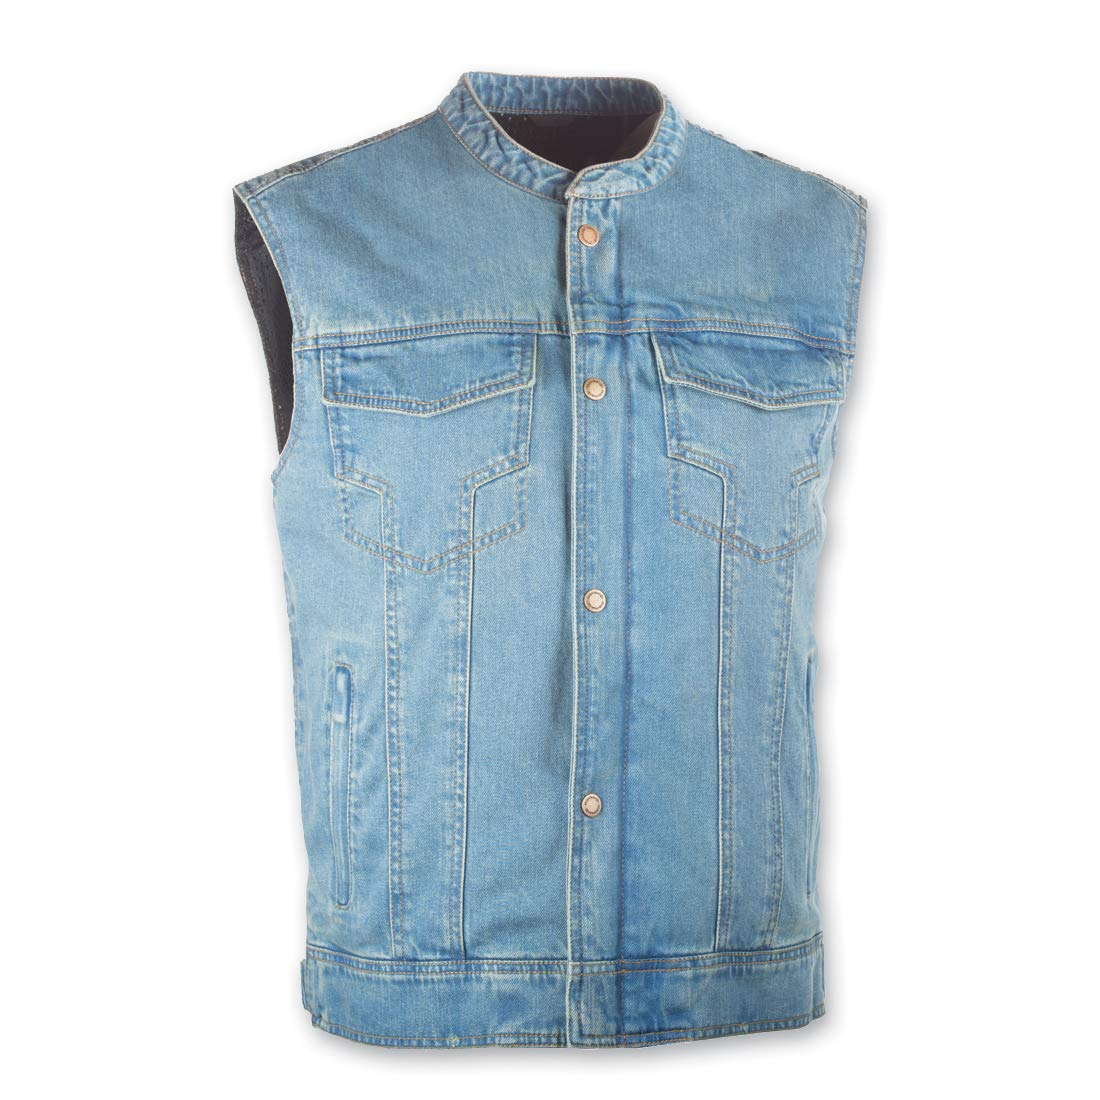 Highway 21 Unisex-Adult Iron Sights Denim Vest with Club Collar Blue Small